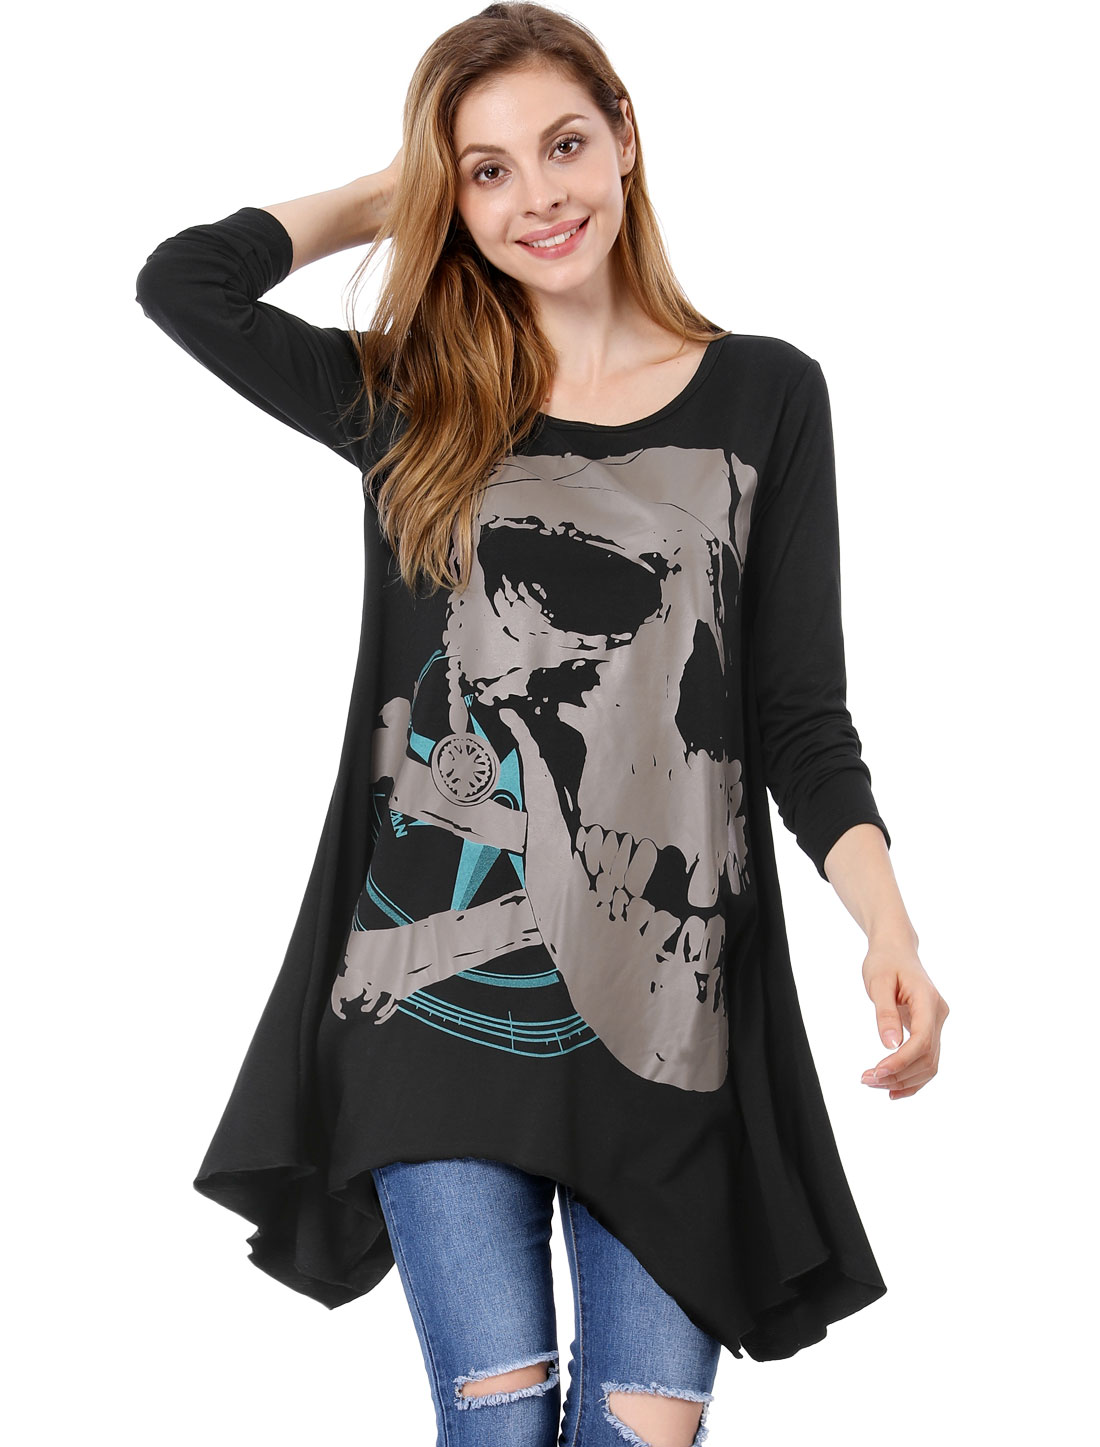 Pullover Chic Skull Pattern Front Black Loose Top Shirt for Lady L